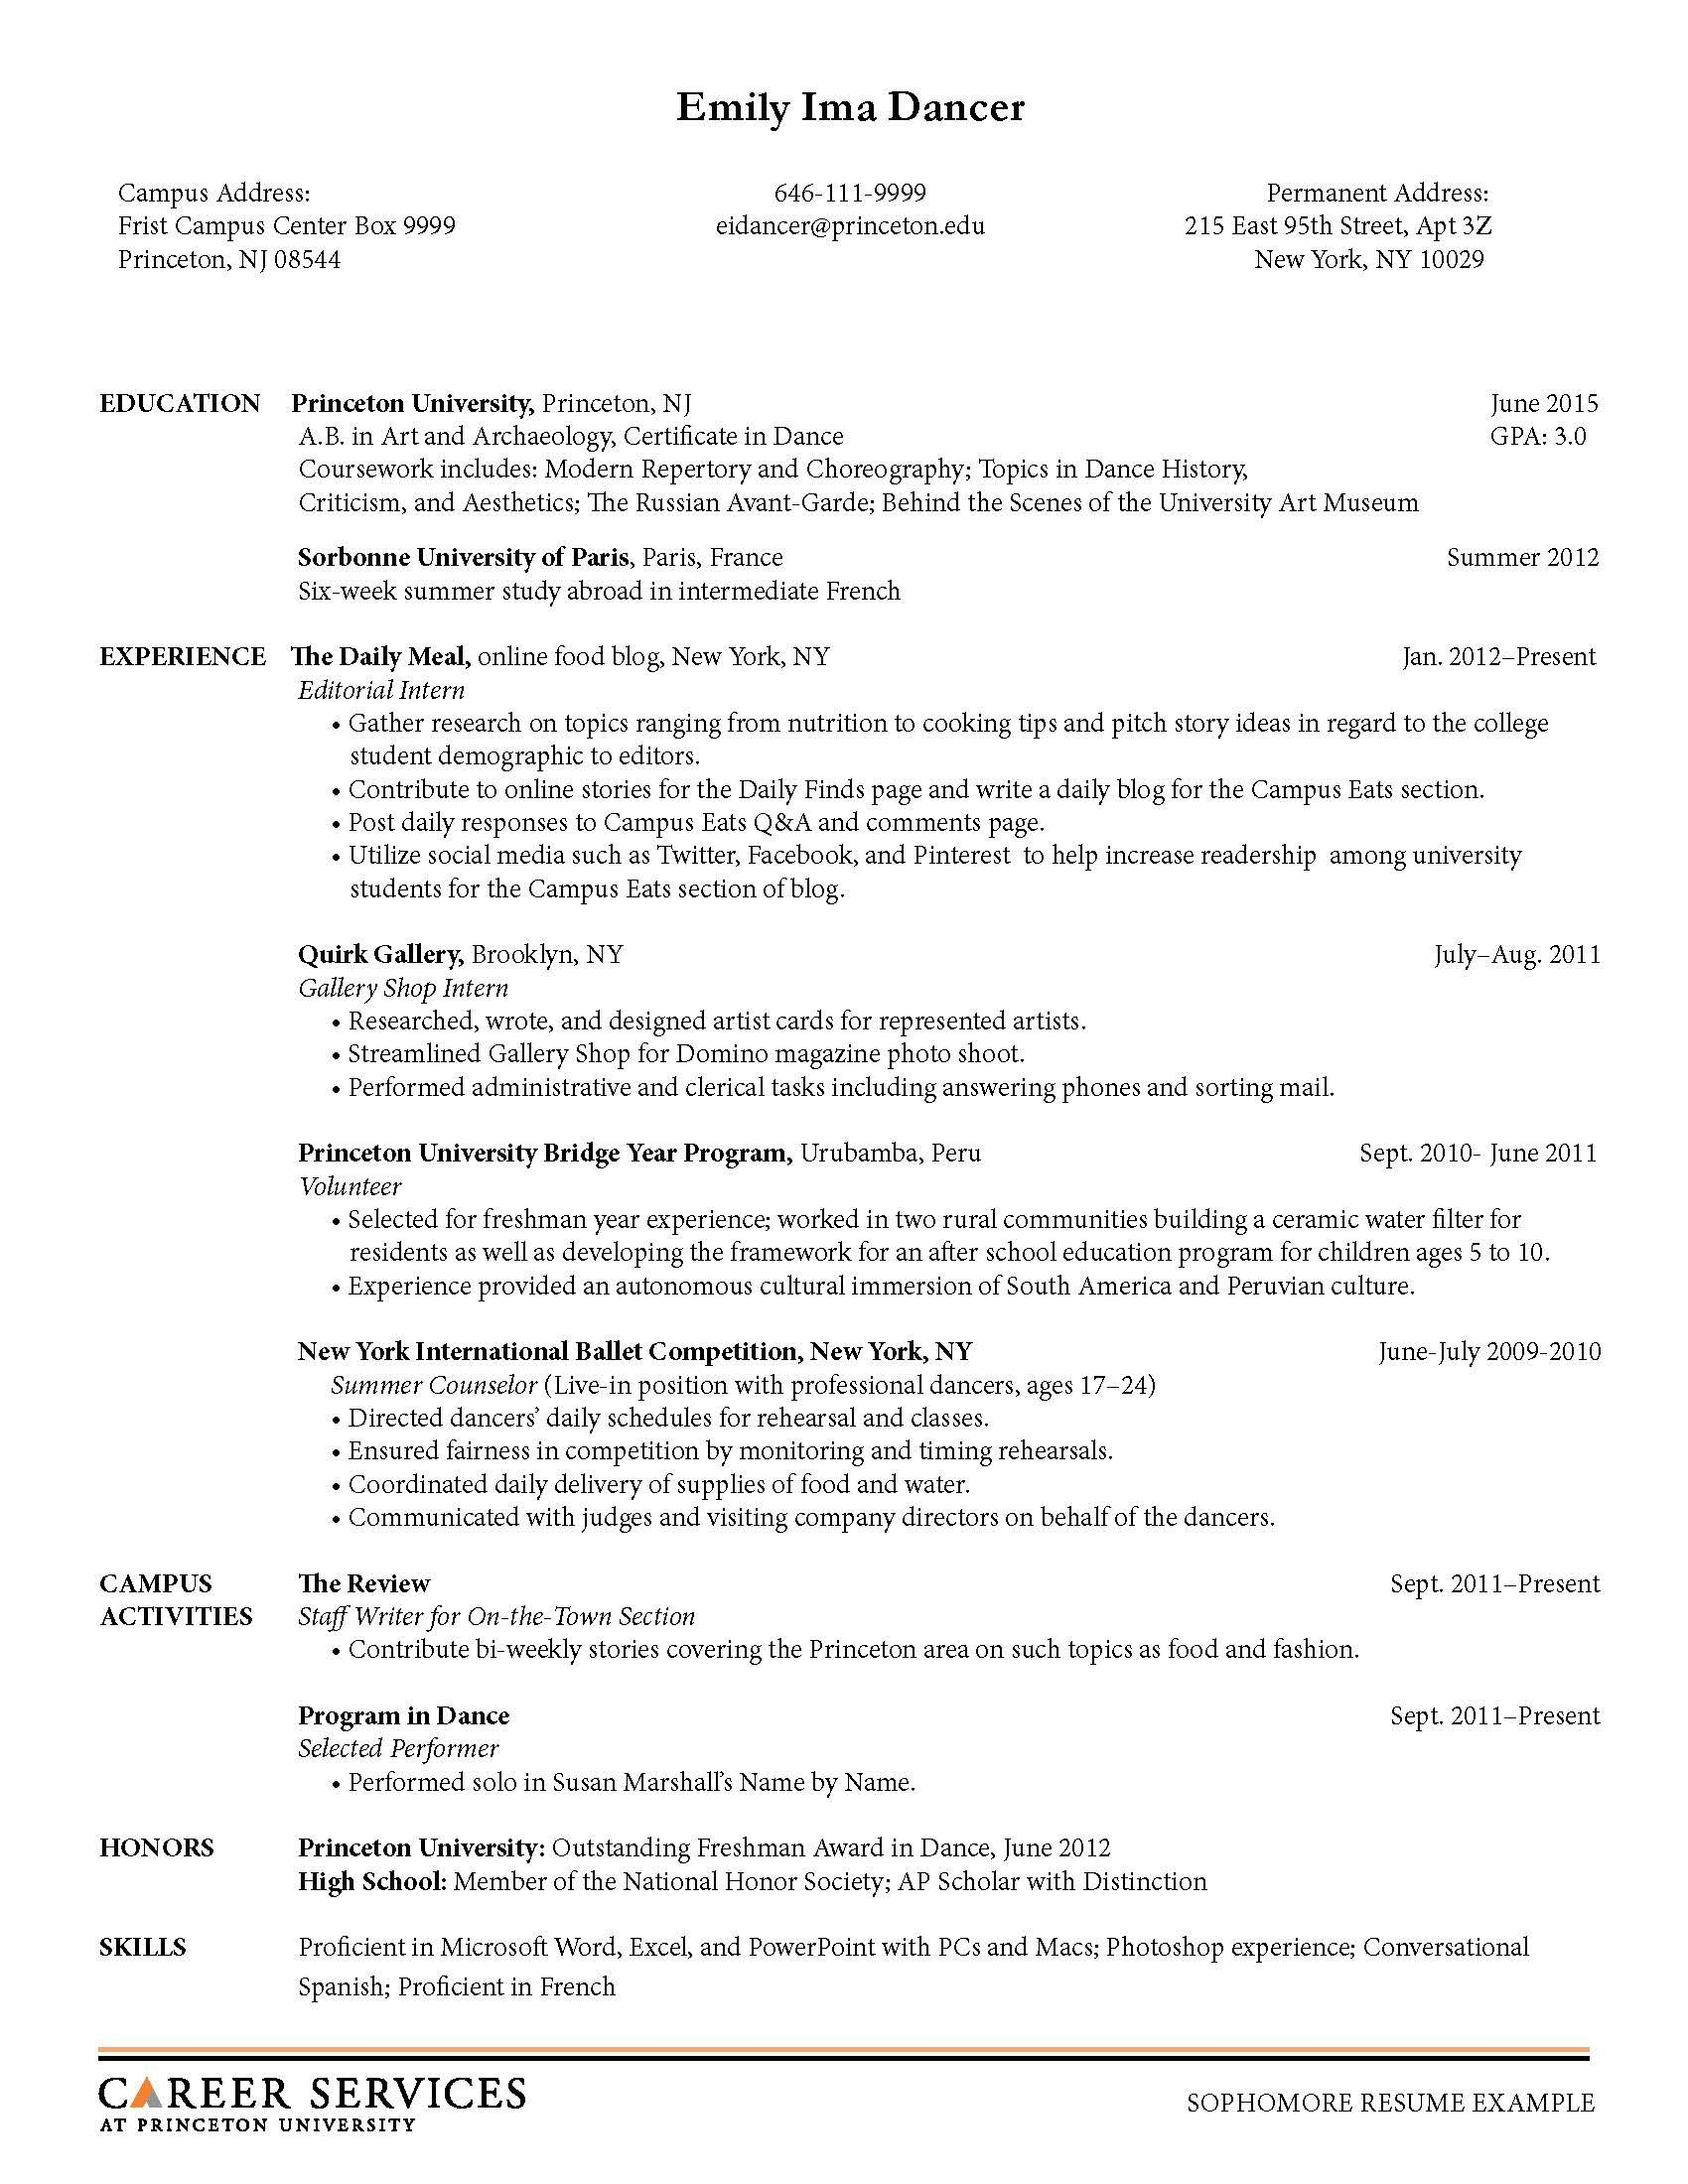 Opposenewapstandardsus  Sweet Sample Resume Resume And Career On Pinterest With Fair What Is The Difference Between Cv And Resume Besides Product Manager Resume Sample Furthermore Human Resource Generalist Resume With Astounding Social Work Resume Template Also Cvs Resume In Addition Process Engineer Resume And High School Resume Objective As Well As Medical Records Resume Additionally How To Write An Objective In A Resume From Pinterestcom With Opposenewapstandardsus  Fair Sample Resume Resume And Career On Pinterest With Astounding What Is The Difference Between Cv And Resume Besides Product Manager Resume Sample Furthermore Human Resource Generalist Resume And Sweet Social Work Resume Template Also Cvs Resume In Addition Process Engineer Resume From Pinterestcom